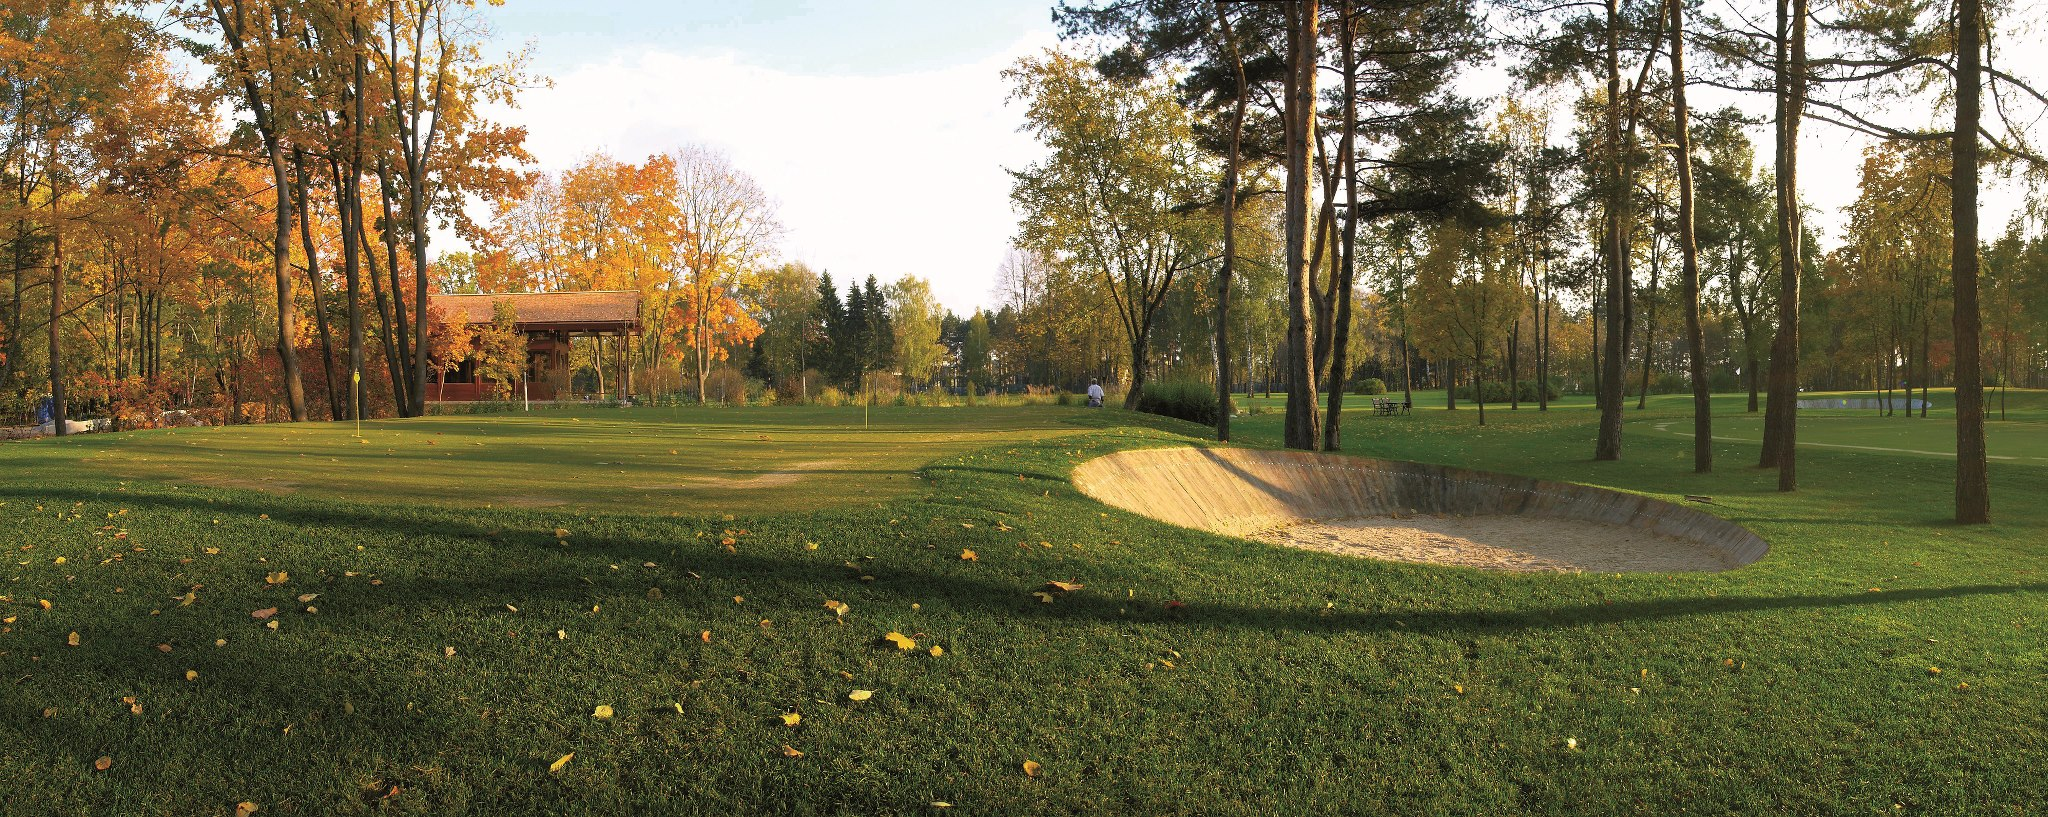 Overview of golf course named Pirogovo Resort